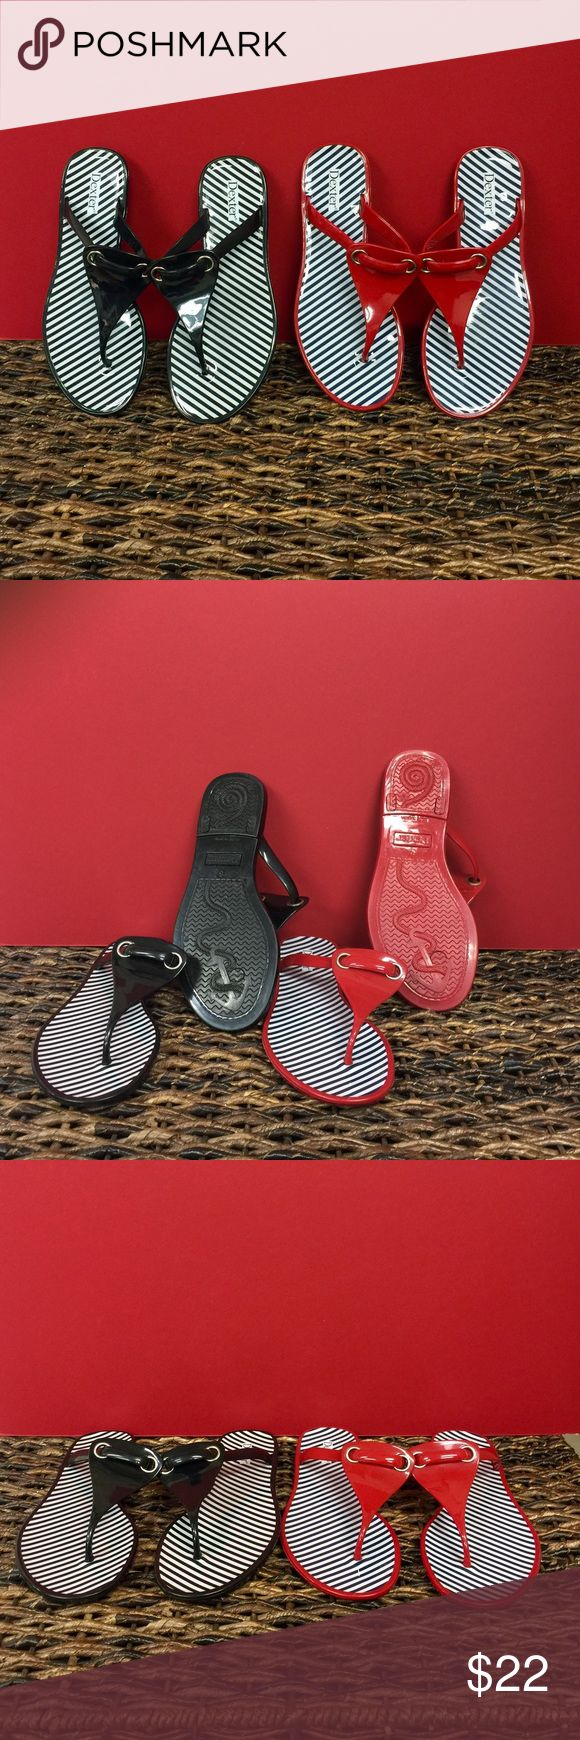 NEW 2-Pairs Dexter Nautical Sandals NEW Dexter Nautical Sandals!! Two Pairs (1) Black & (1) Red!! Perfect New Condition. Price is for 2-Pairs Together!! Will separate for $12 each Dexter Shoes Sandals